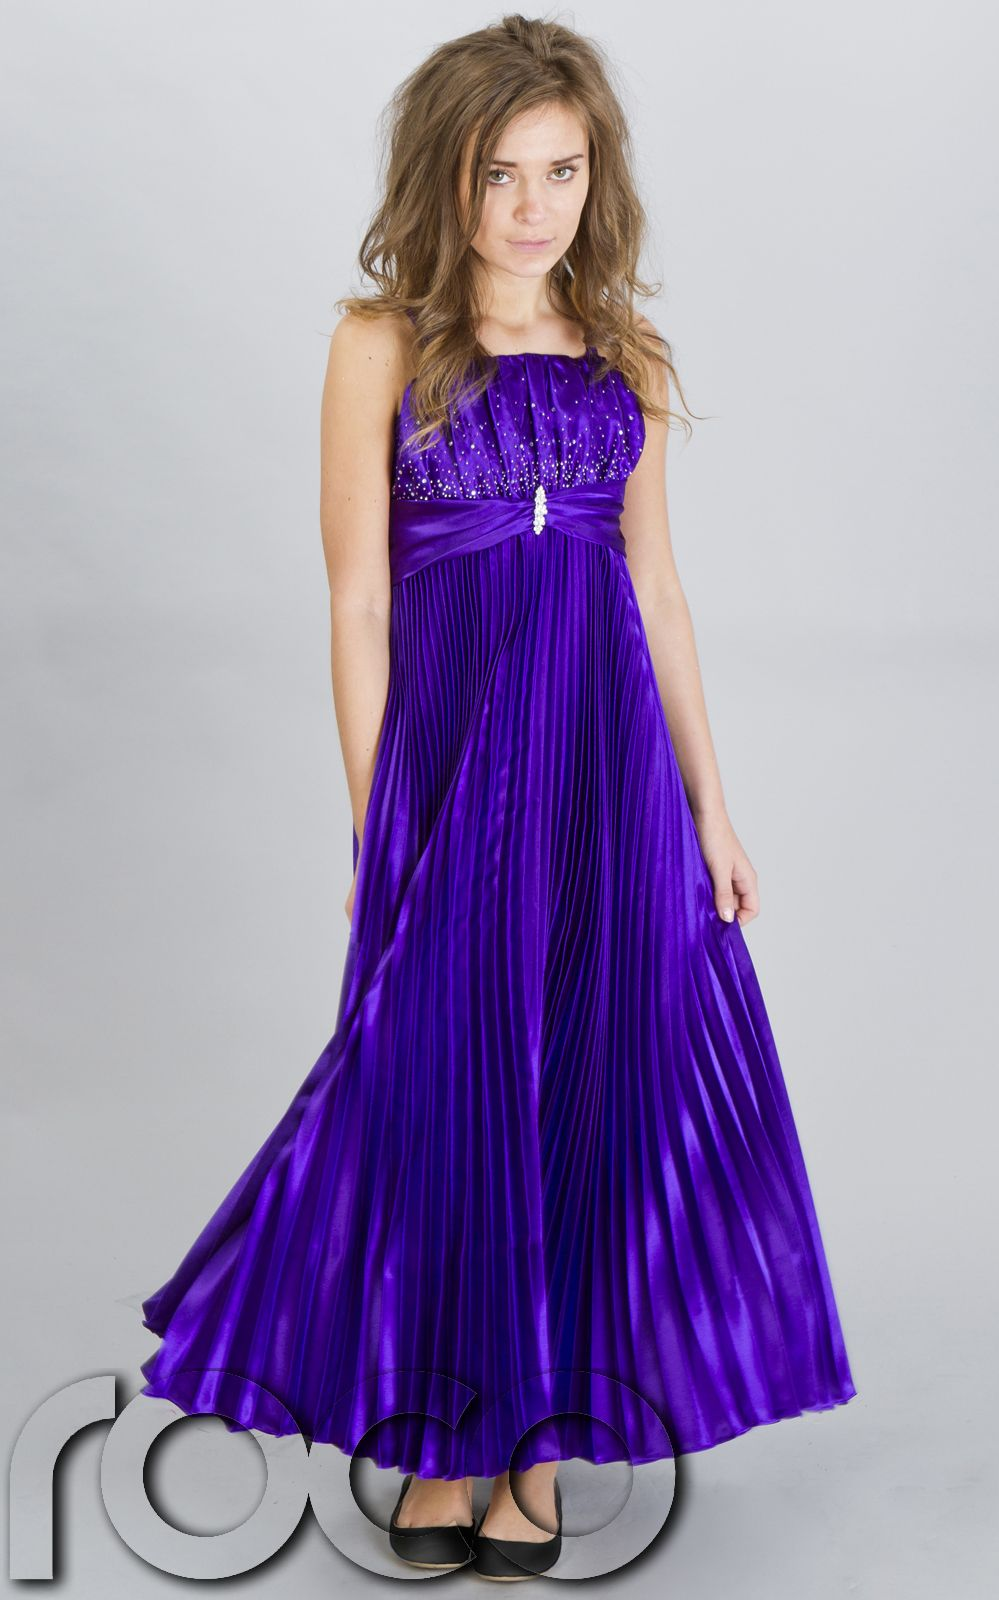 Cheap girls prom dresses girls party purple bridesmaid